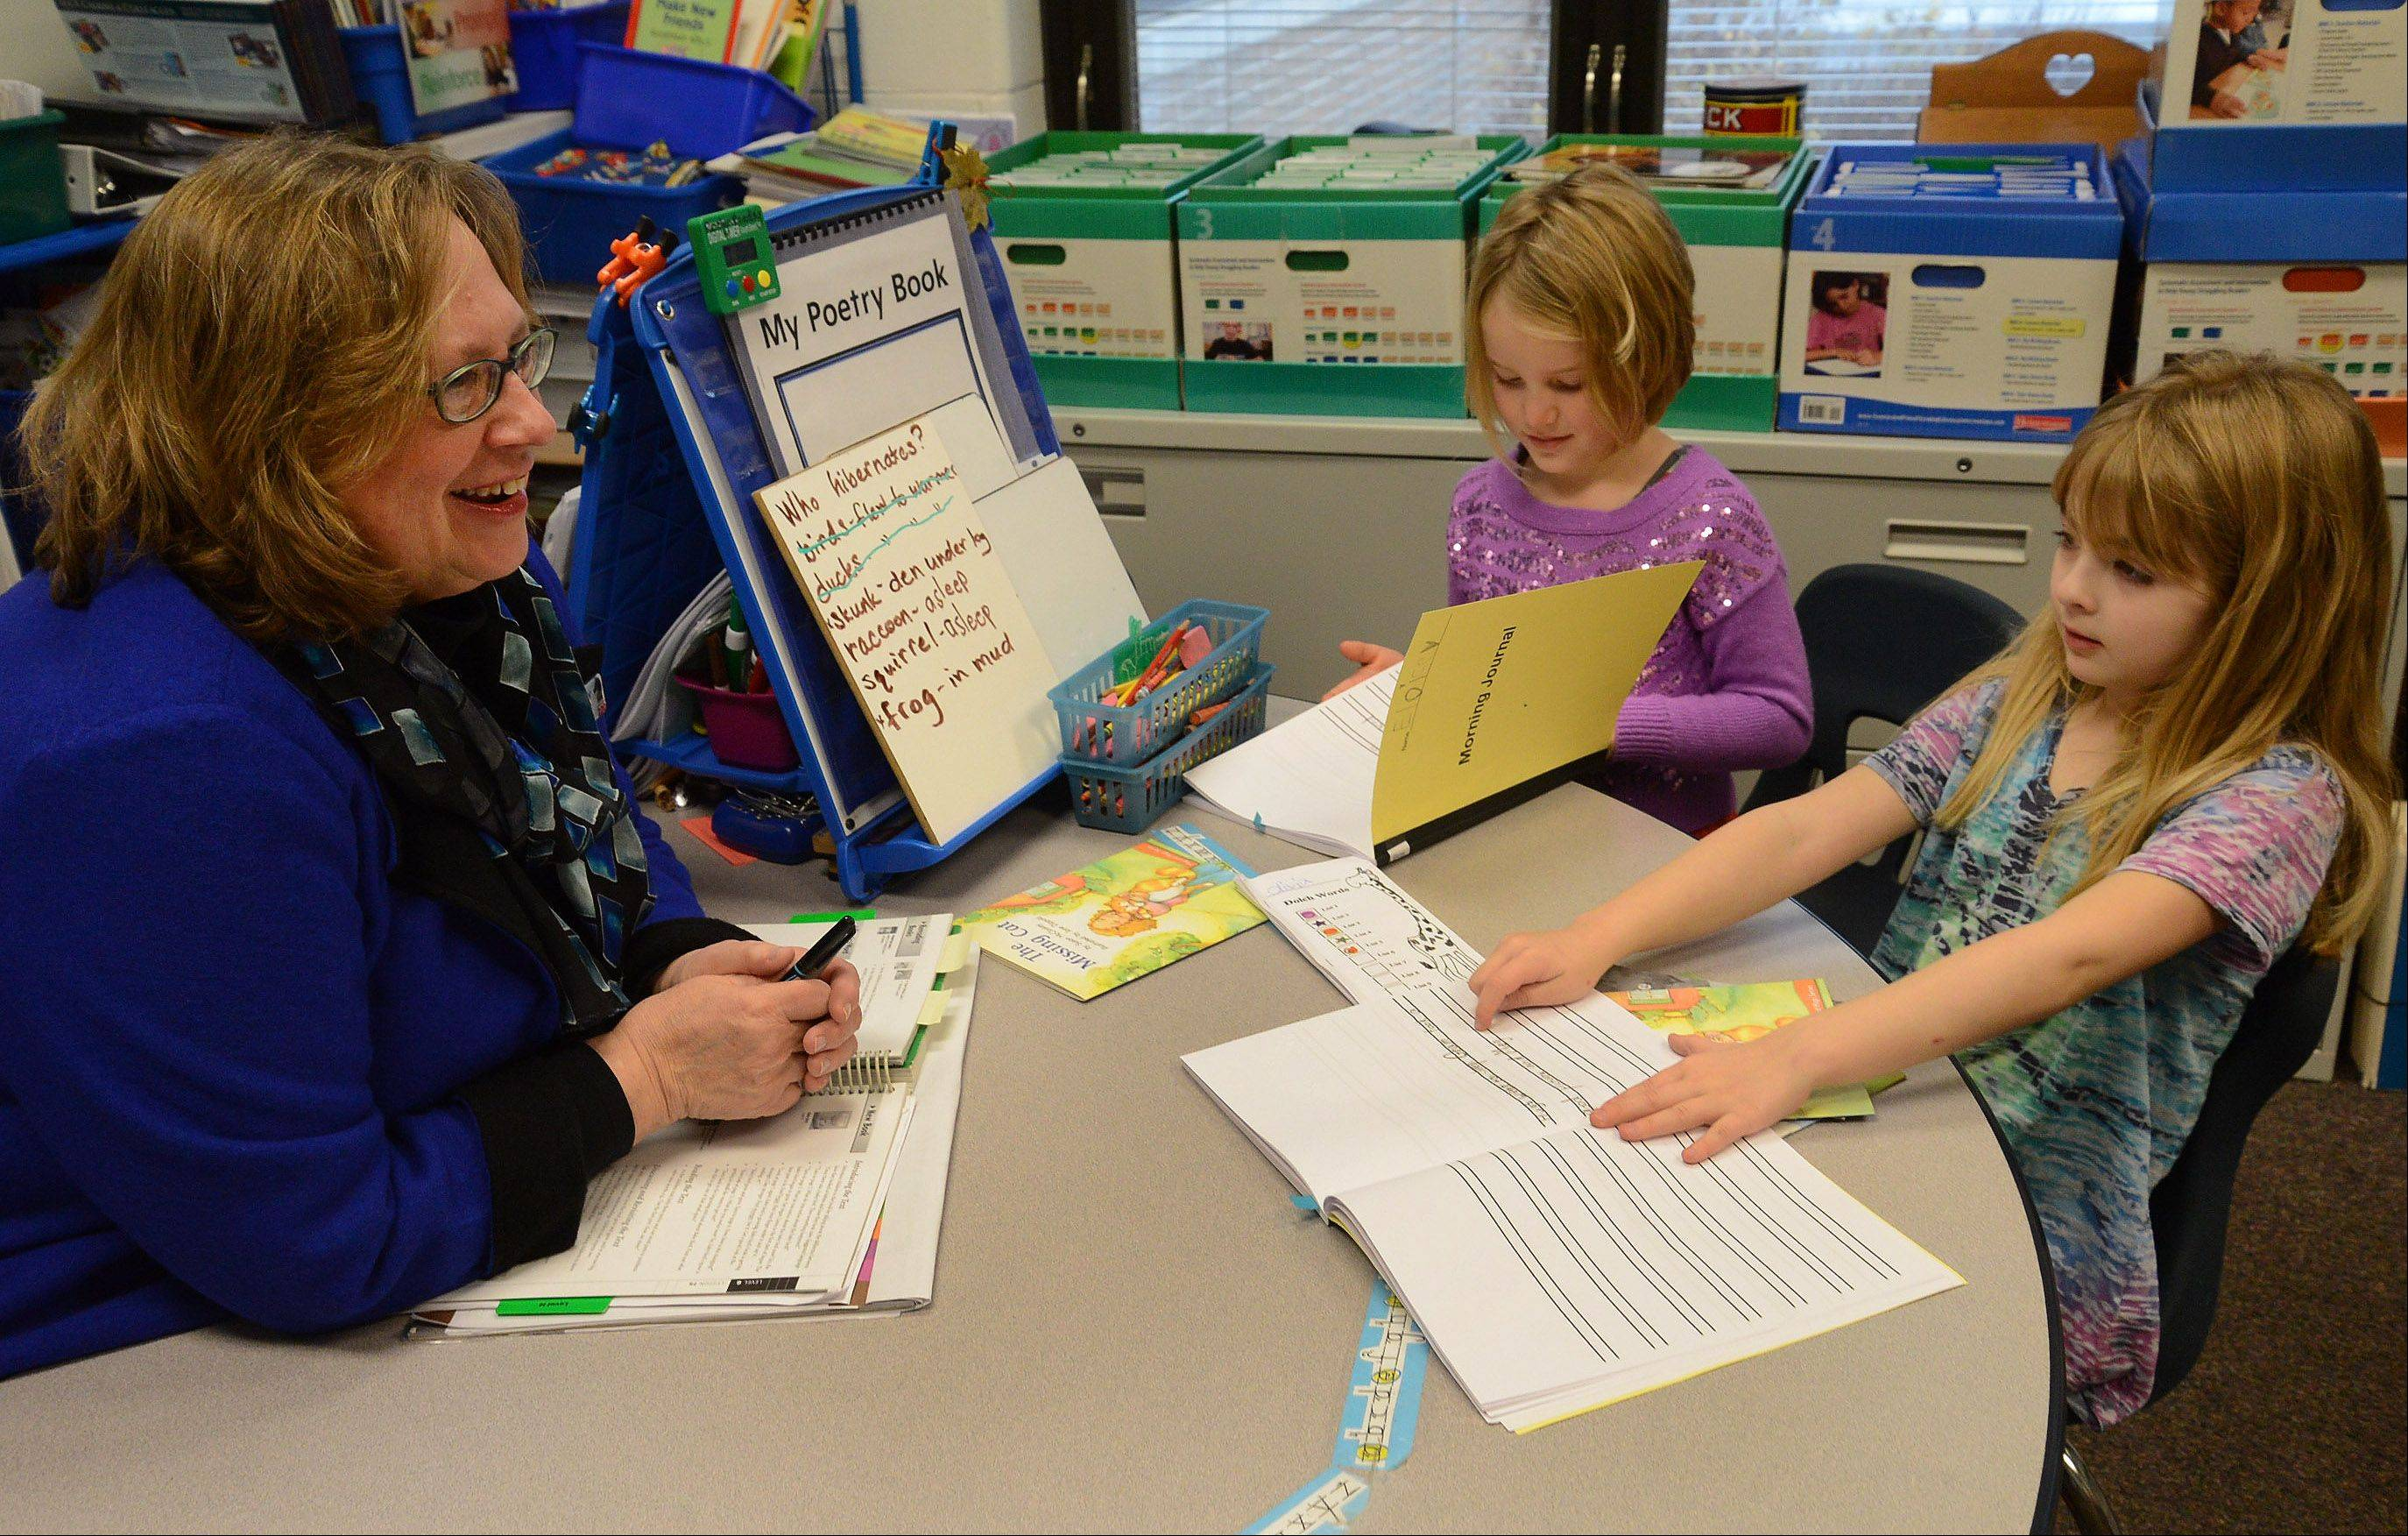 Reading Specialist Sylvia Chidley works with students Eloise Nelson, left, and Olivia Martelon at Roslyn Road Elementary School in Barrington. The school is one of three from Northwest Cook County to win a National Blue Ribbon Award this year.